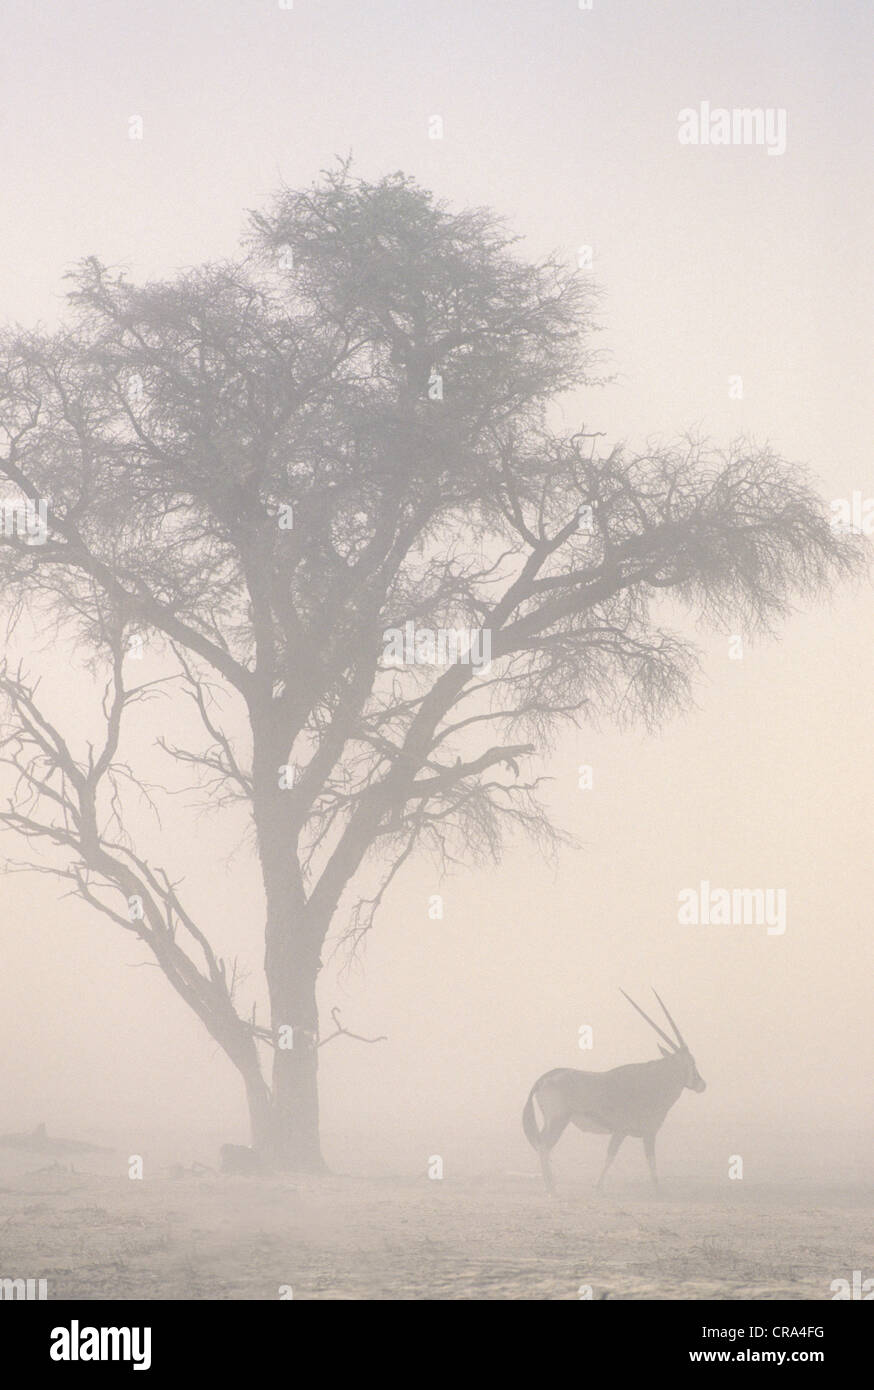 Global warming, sandstorm and gemsbok at 45C temperatures, Kgalagadi Transfrontier Park, South Africa - Stock Image